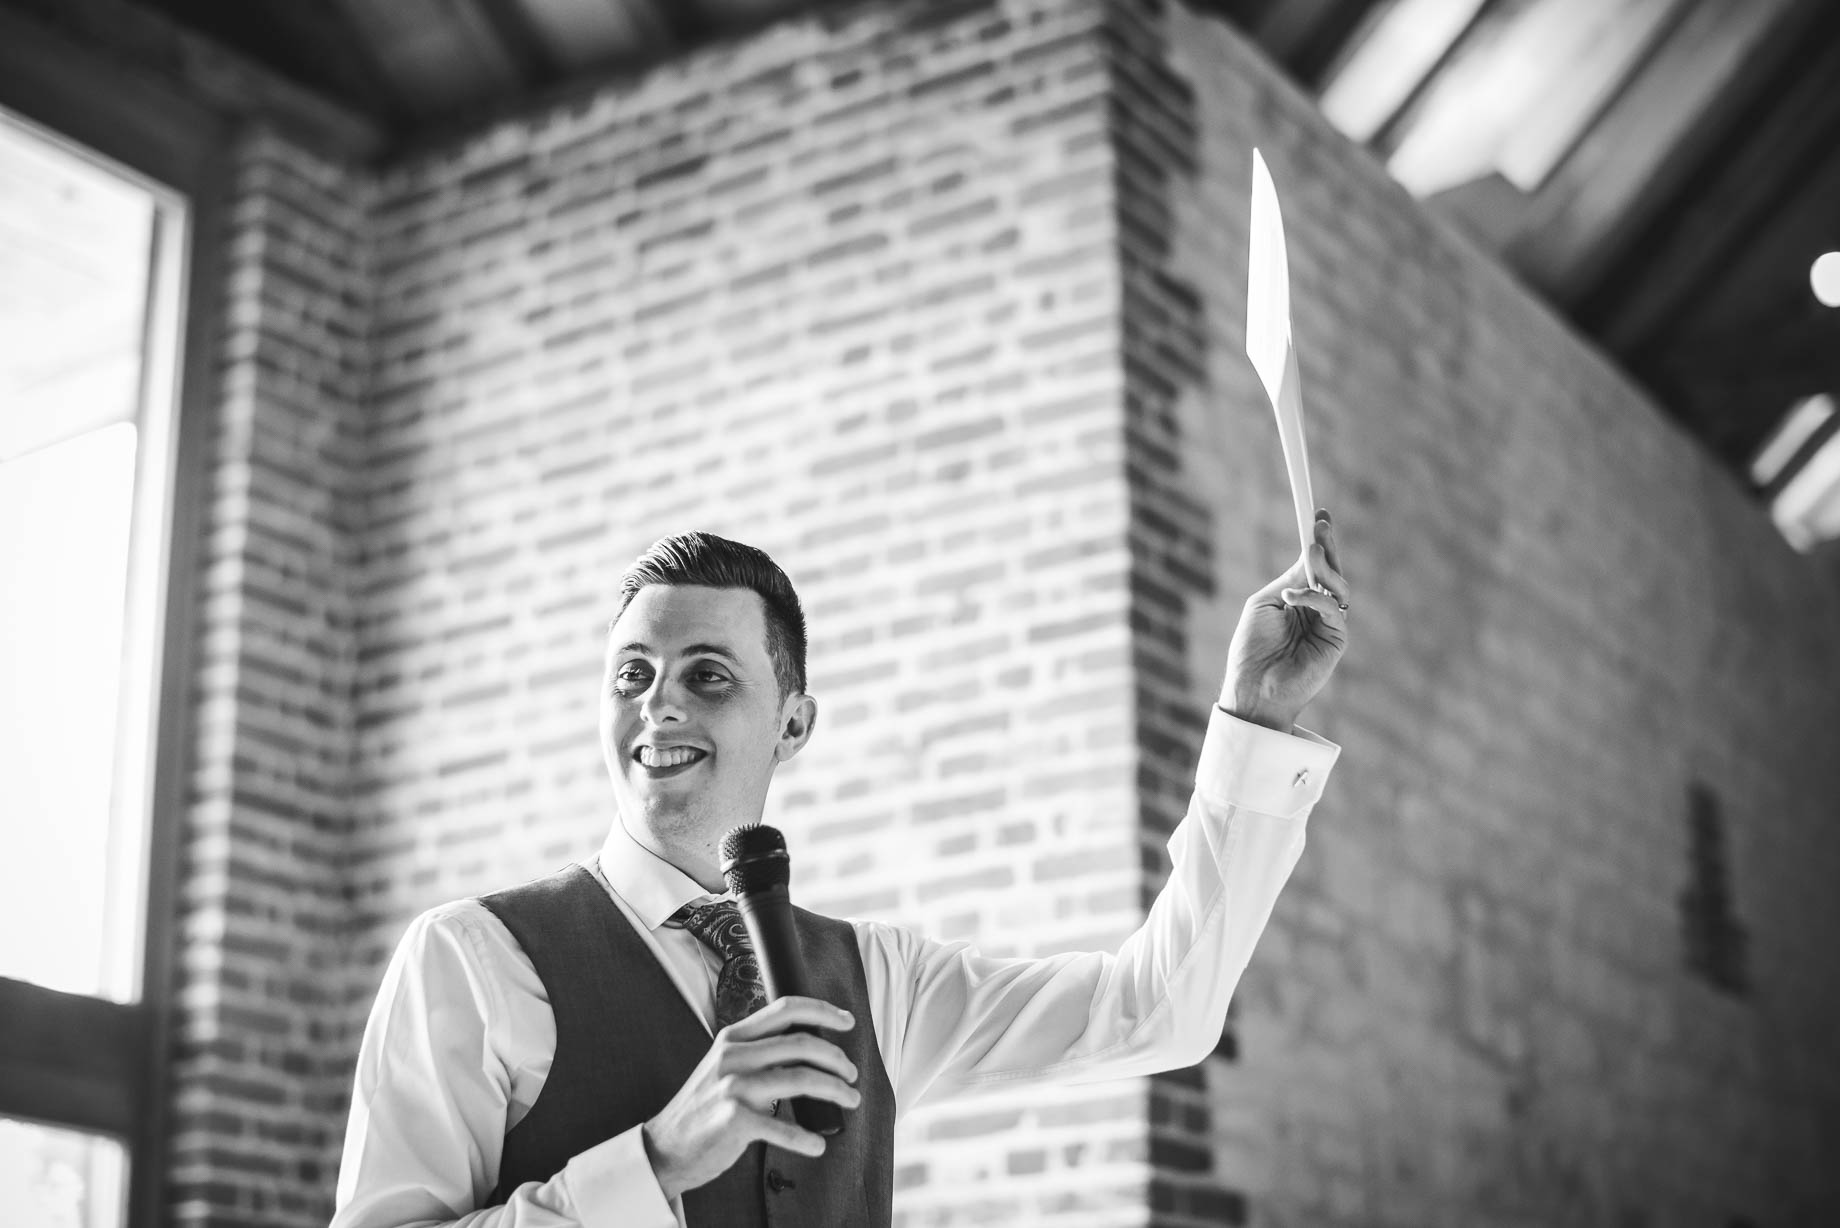 Bury Court Barn wedding photography - Guy Collier - Kirsty and Lewis (127 of 150)